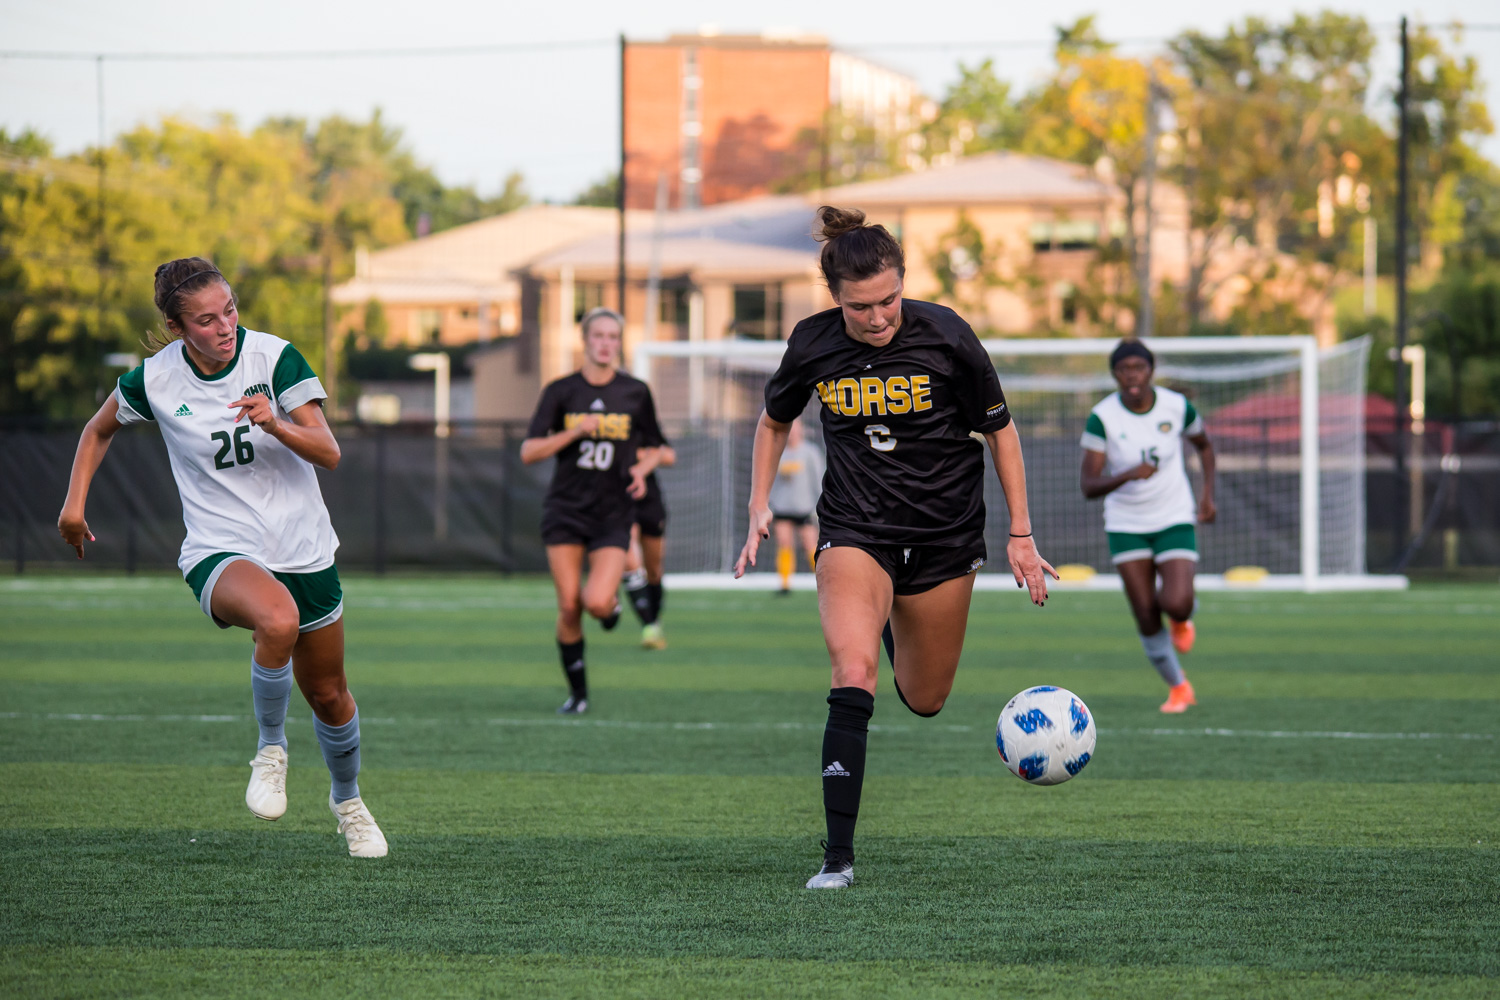 Ally+Perkins+%286%29+drives+toward+the+goal+during+the+game+against+Ohio+University.+The+Norse+fell+to+the+Bobcats+during+the+game+on+Sunday+night.